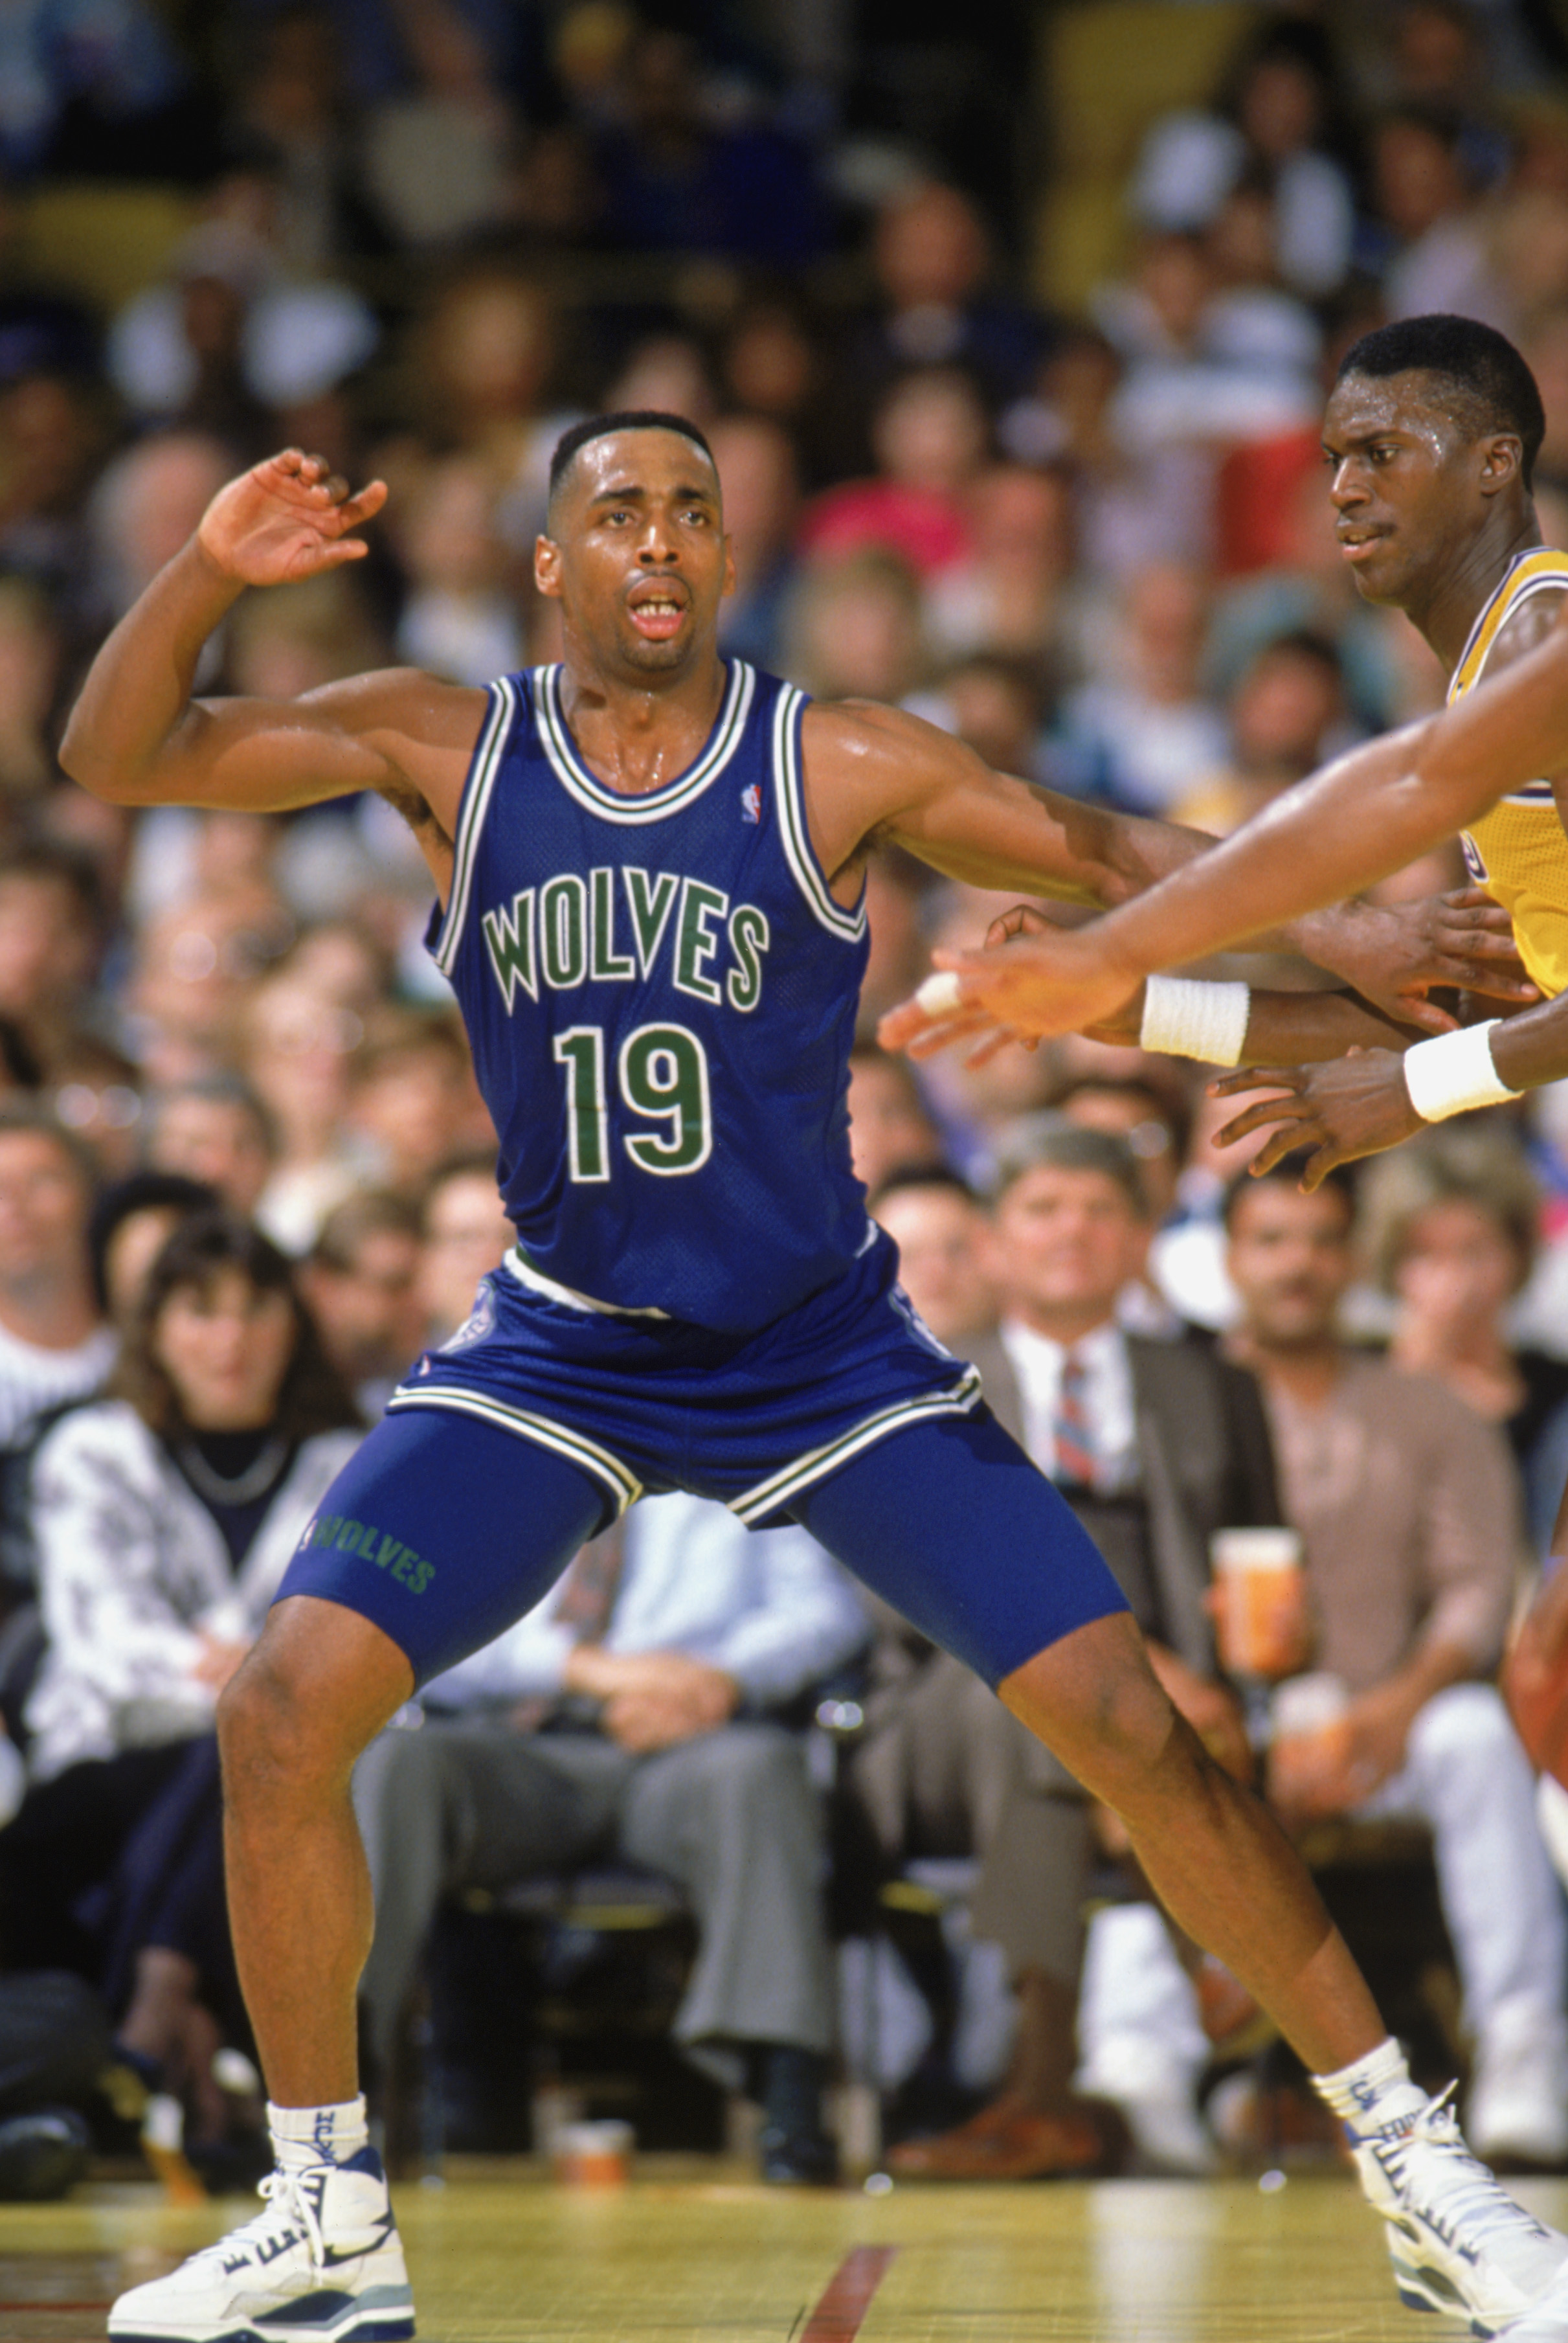 LOS ANGELES - 1990:  Tony Campbell #19 of the Minnesota Timberwolves calls for the ball during a game against the Los Angeles Lakers at the Great Western Forum in Los Angeles, California during the 1989-1990 NBA season.  (Photo by Mike Powell/Getty Images